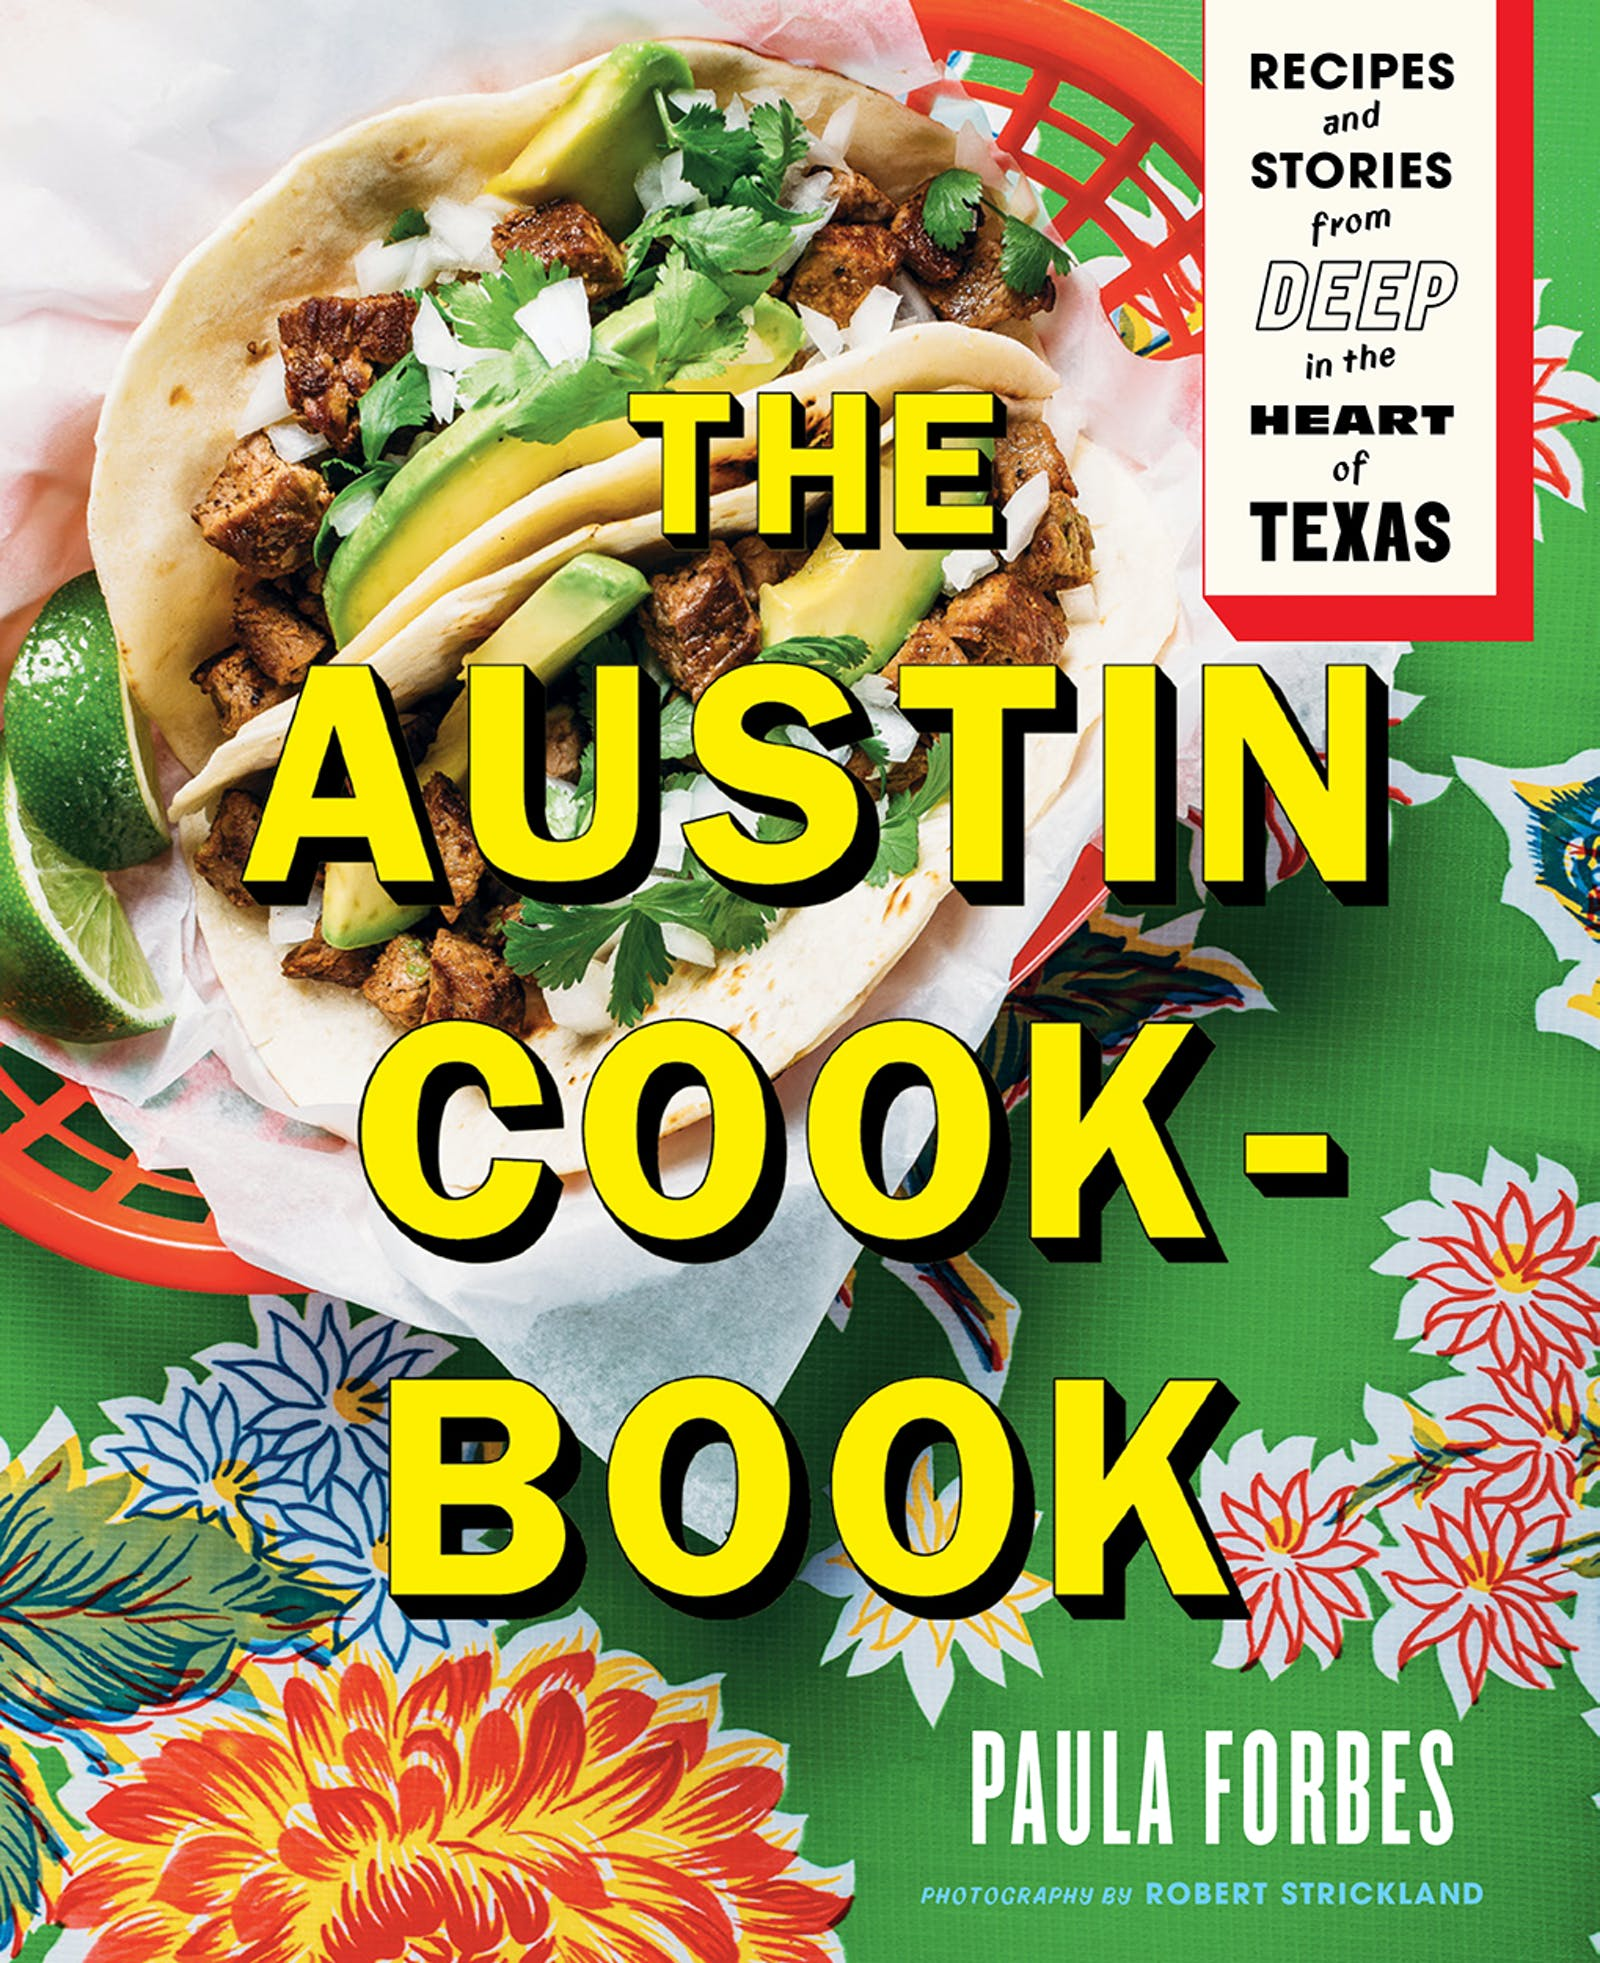 The Austin Cookbook by Paula Forbes, published by Abrams Books.